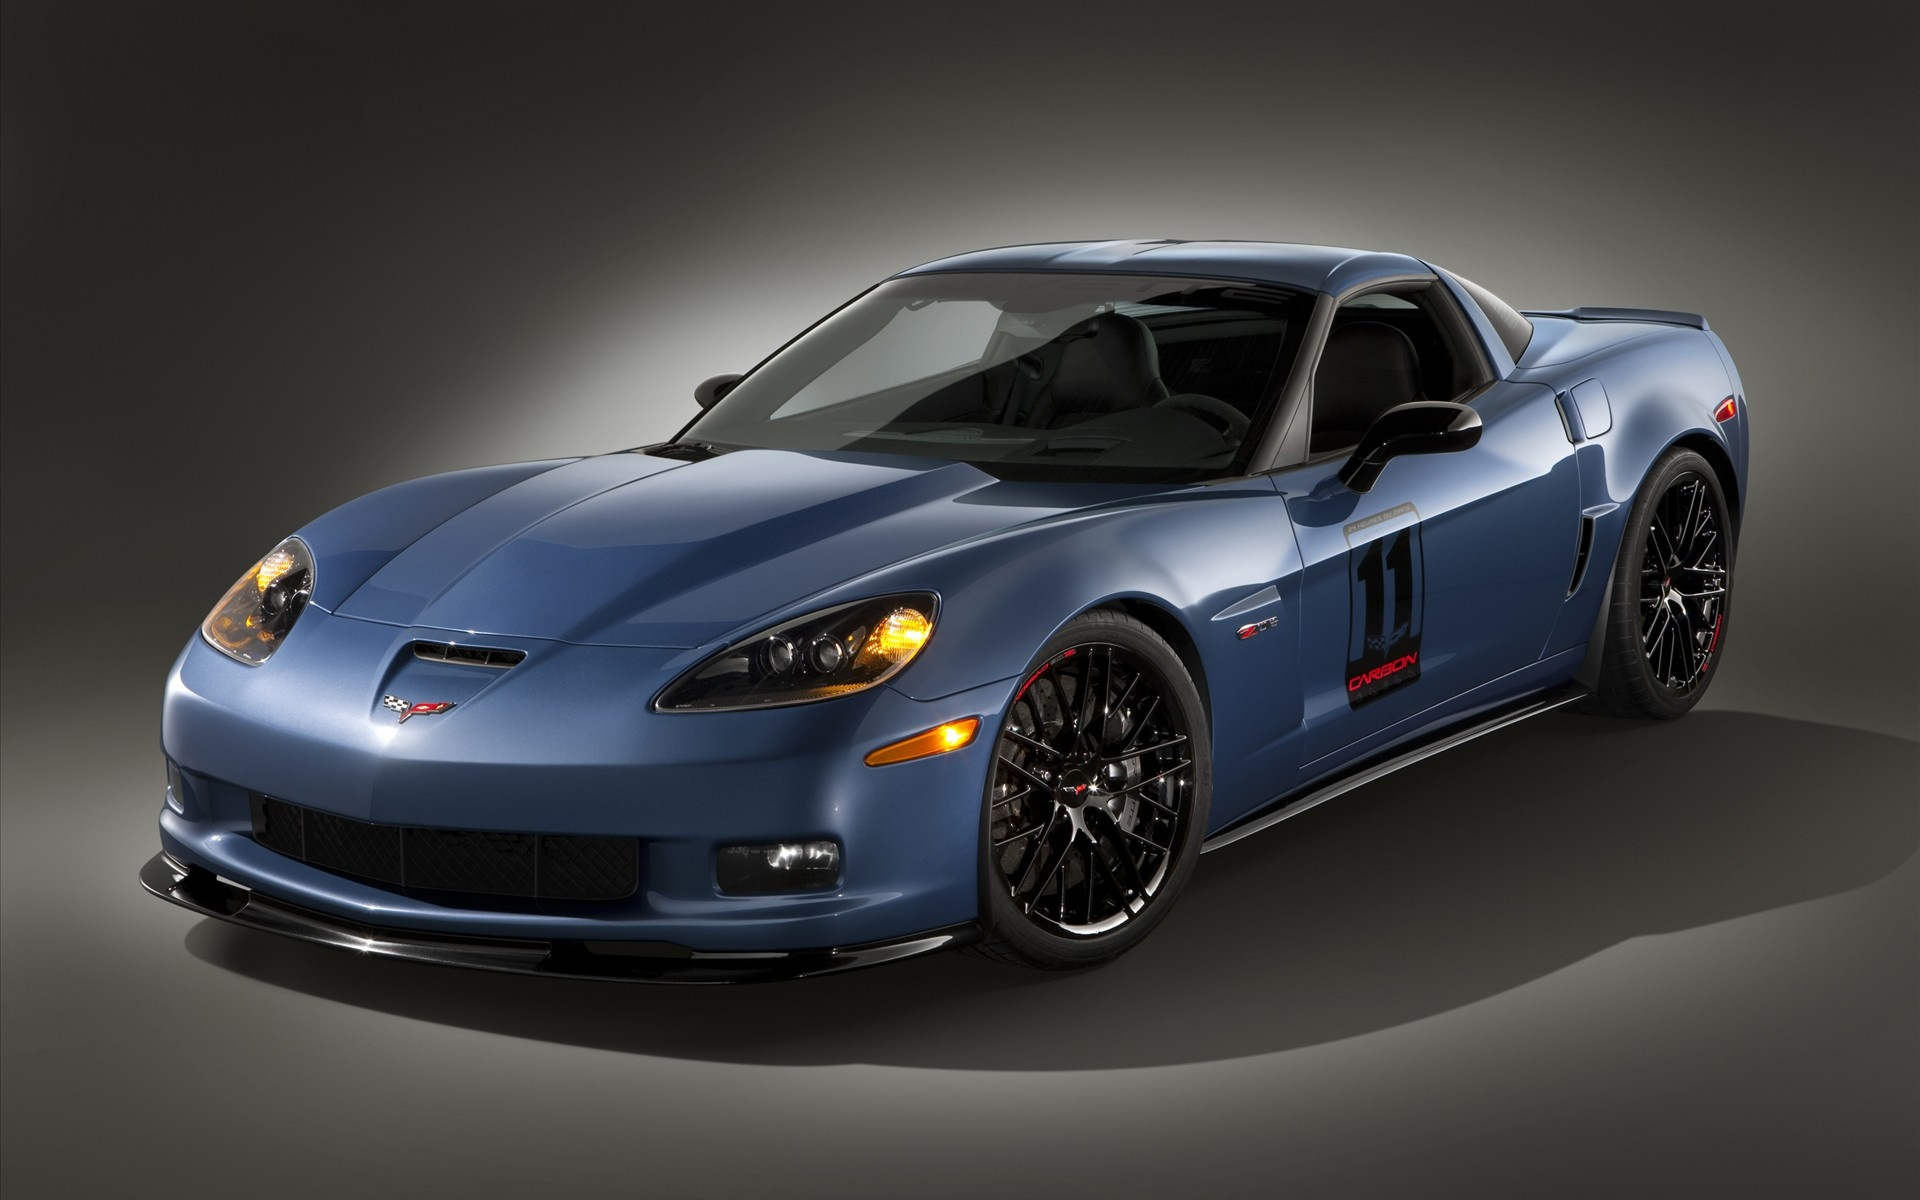 2011 Corvette Z06 Carbon Wallpapers In Jpg Format For Free Download